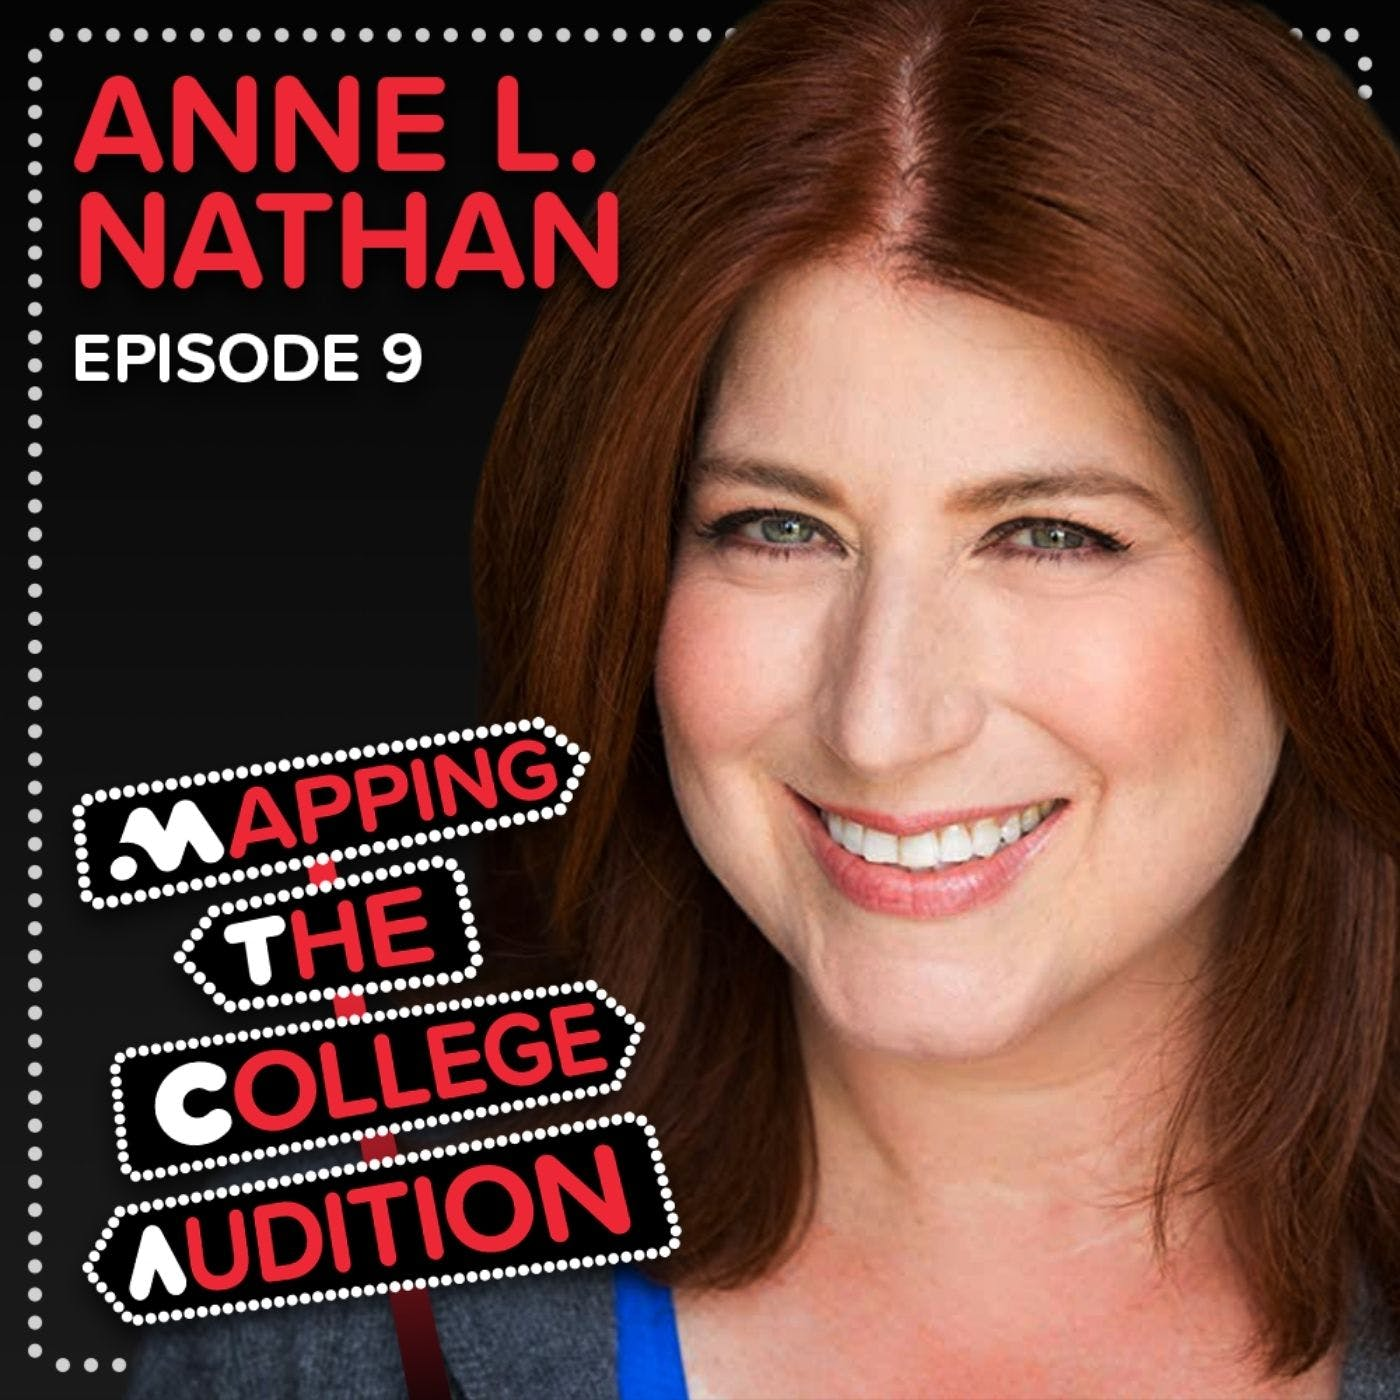 Ep. 9 (AE): Anne L. Nathan (Broadway Veteran), on Building Community, the Confidence of Training, Compartmentalizing, & the Discipline it takes to Grind